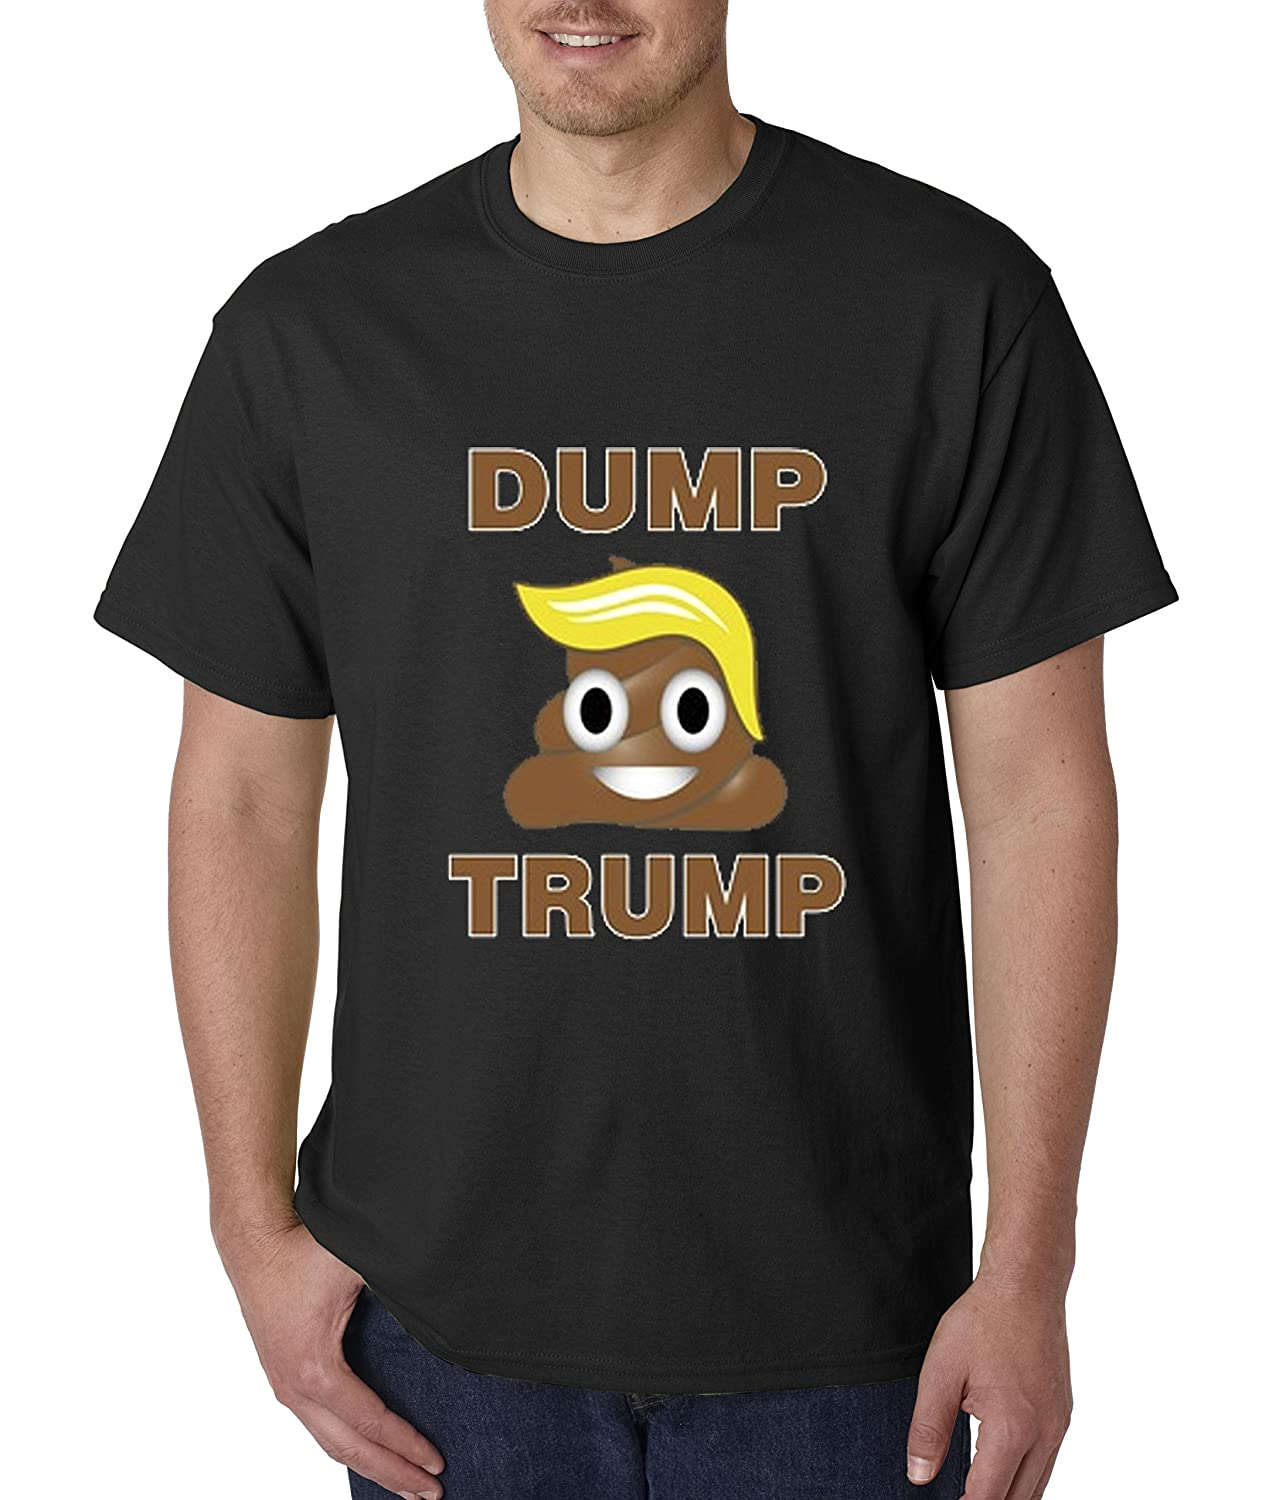 Amazon.com: allwitty 1041 - Unisex T-Shirt Dump Trump Poop Emoji President Election: Clothing